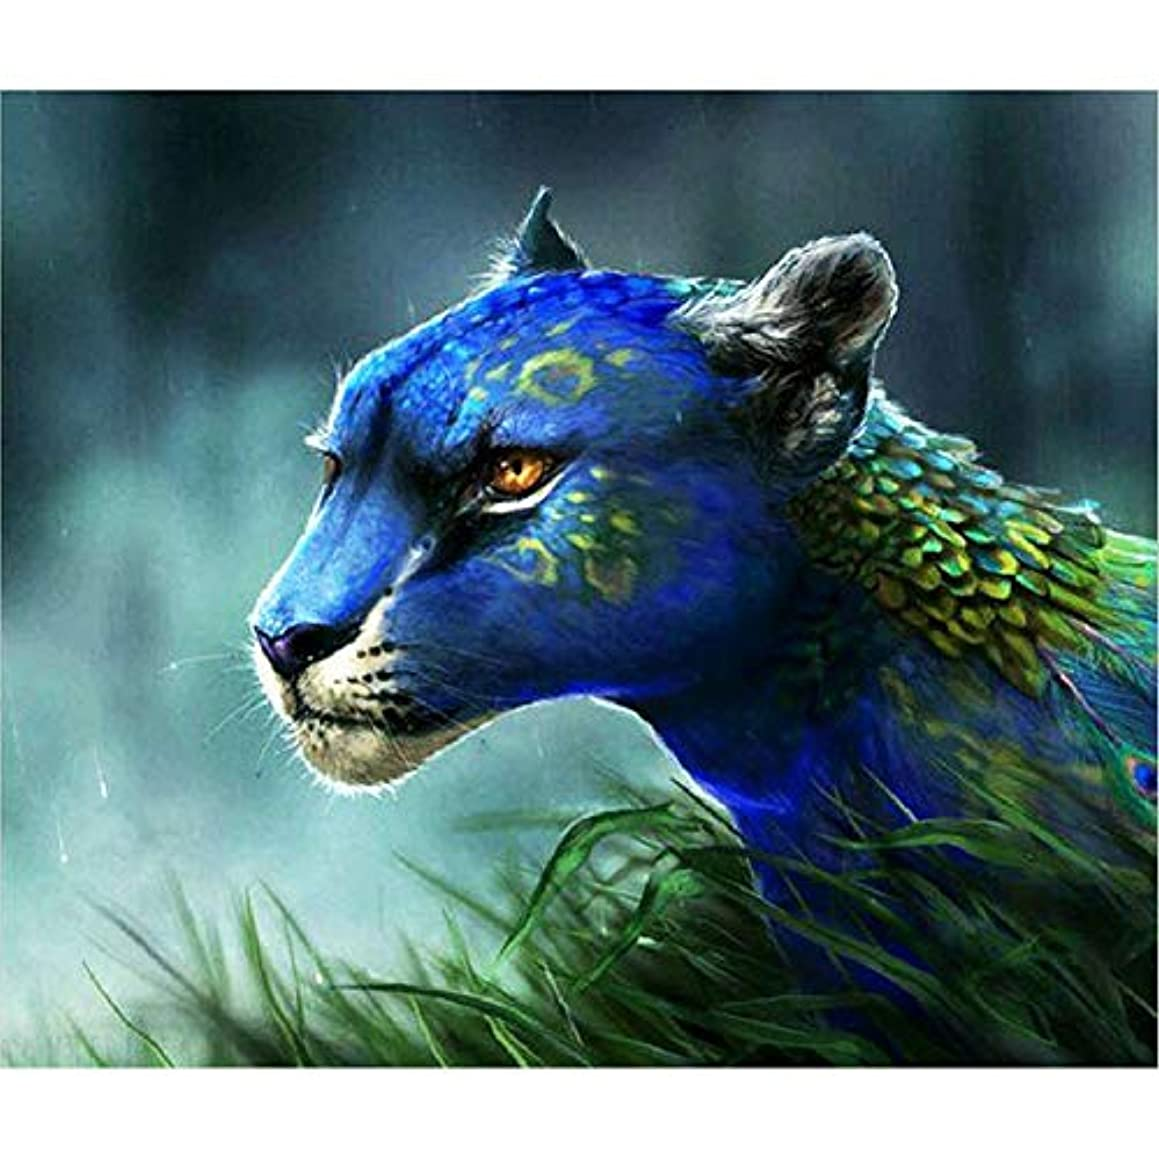 DIY Handwork Store 5D Full Drill Round Diamond Painting Kits Crystal Rhinestones Peacock Leopard Animal Cross Stitch Mosaic Embroidery Arts Crafts Gift Home Wall Decor(20.47''x 17.72'')